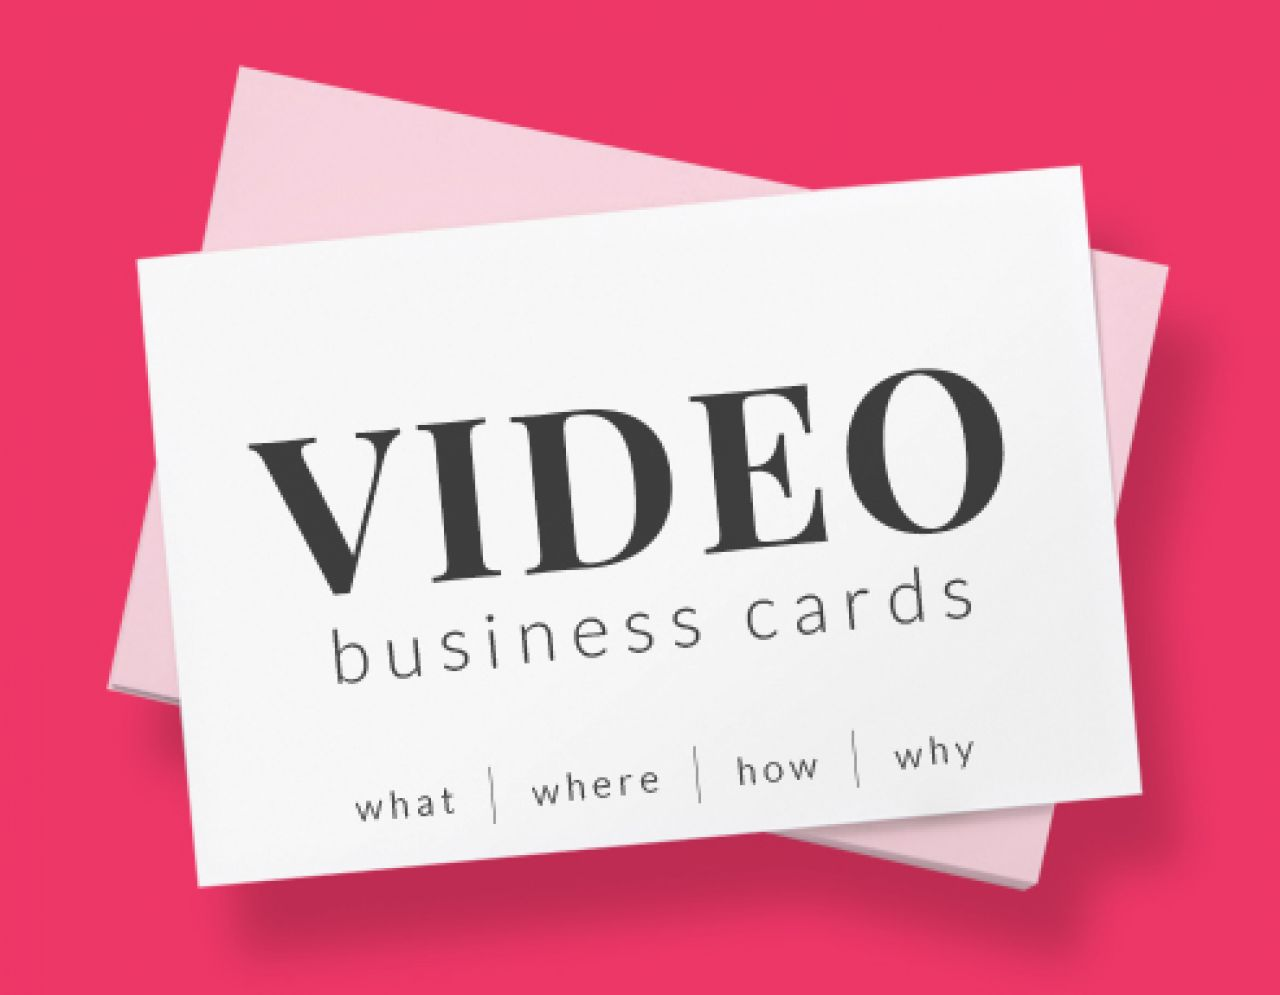 Video Business Cards | Biteable